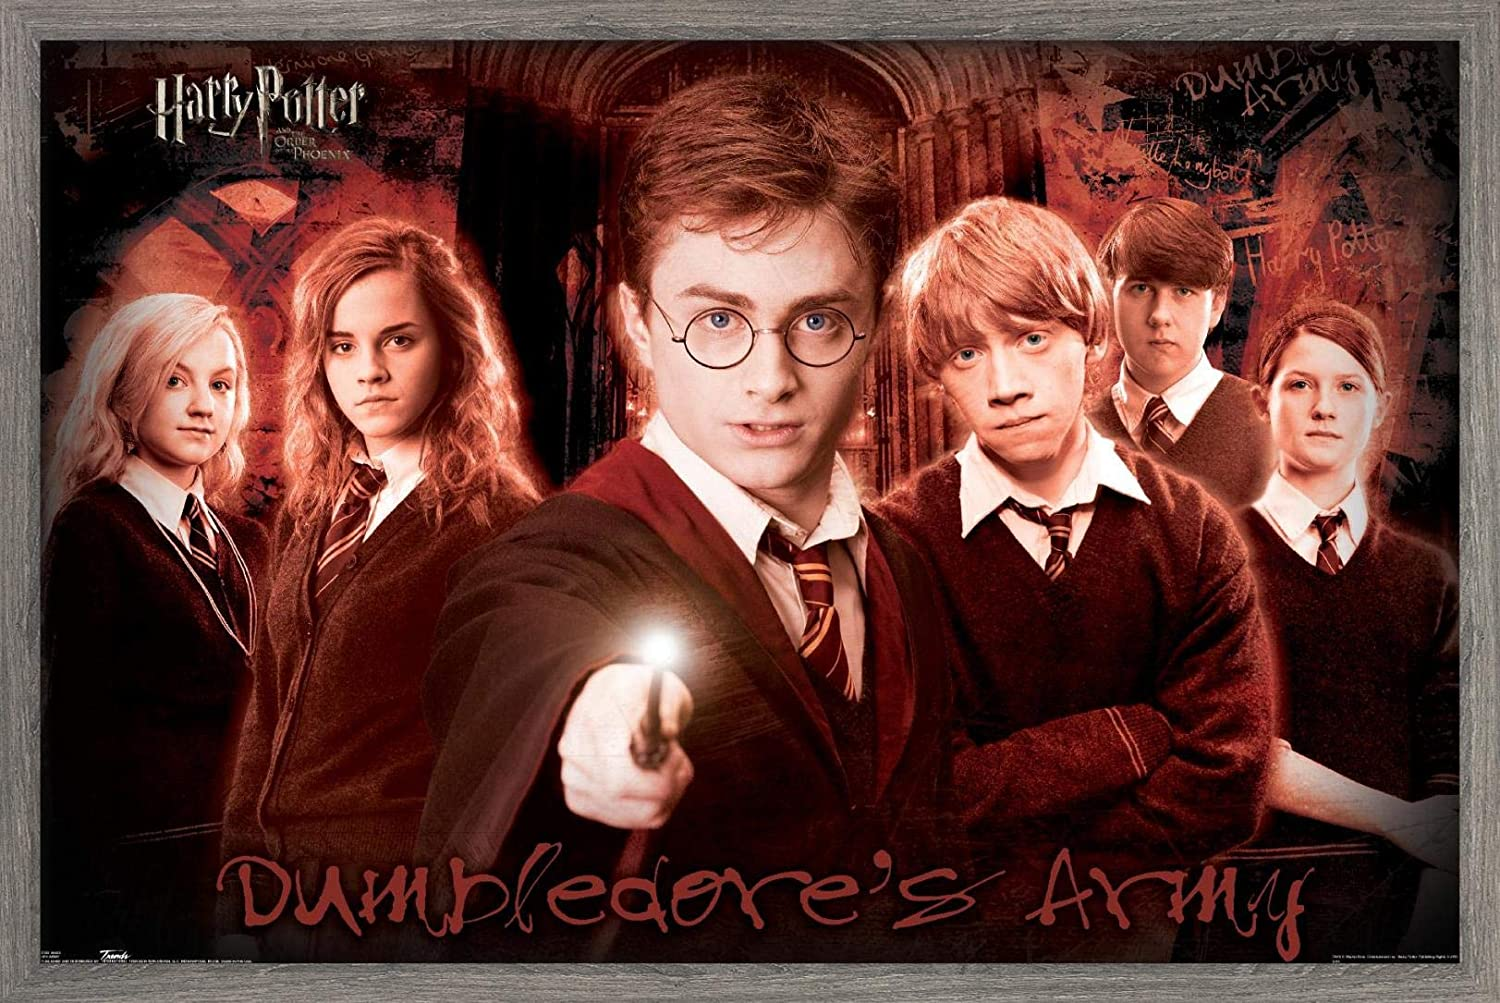 Surprise price Trends Credence International Harry Potter and Order - Phoenix The of